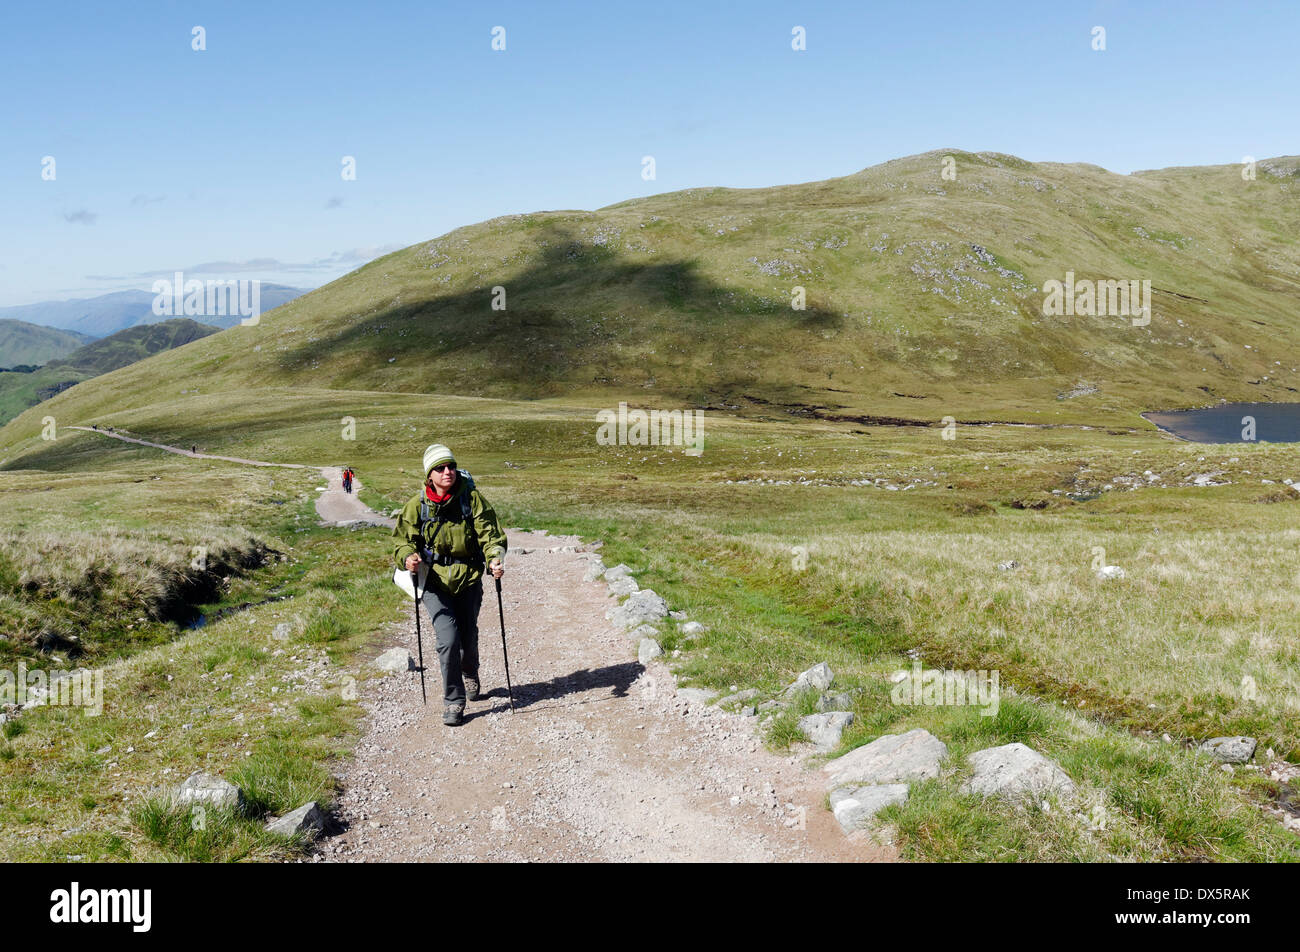 A lady hillwalker passing the Halfway Lochan on the CMD arete route on Ben Nevis in the Scottish Highlands - Stock Image